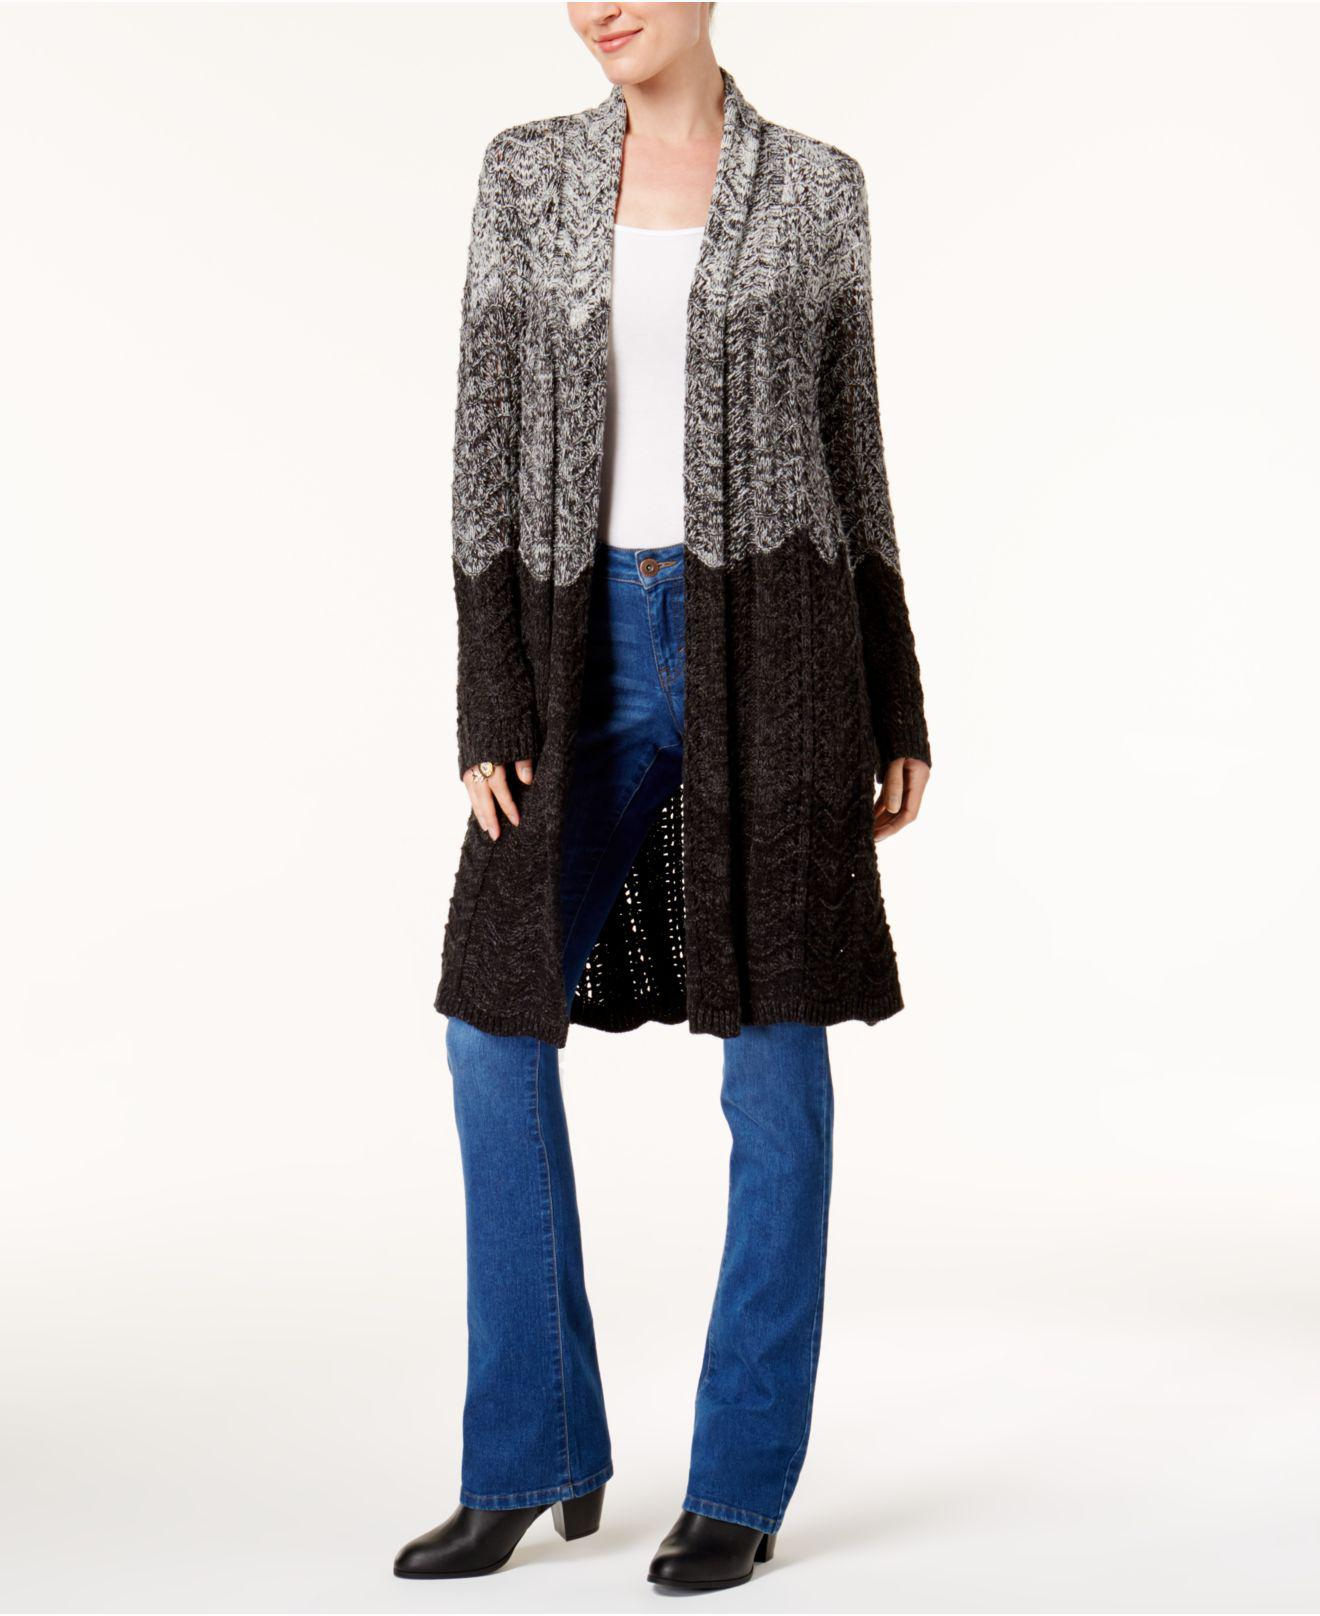 Style & co. Ombré Duster Cardigan in Gray - Save 18% | Lyst